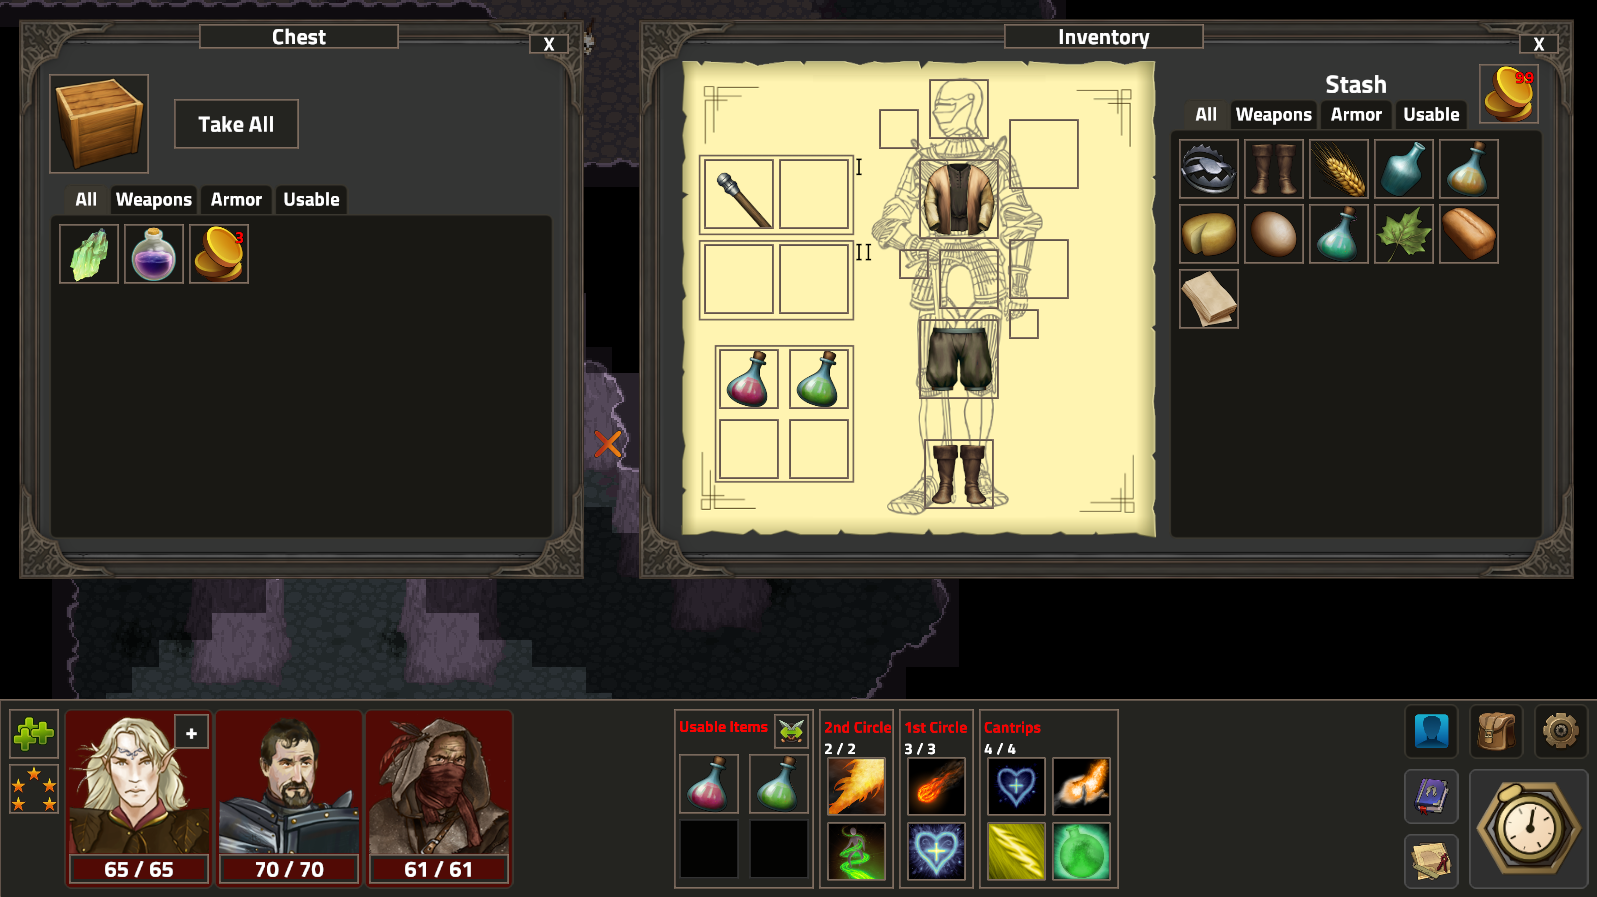 chest and inventory with items